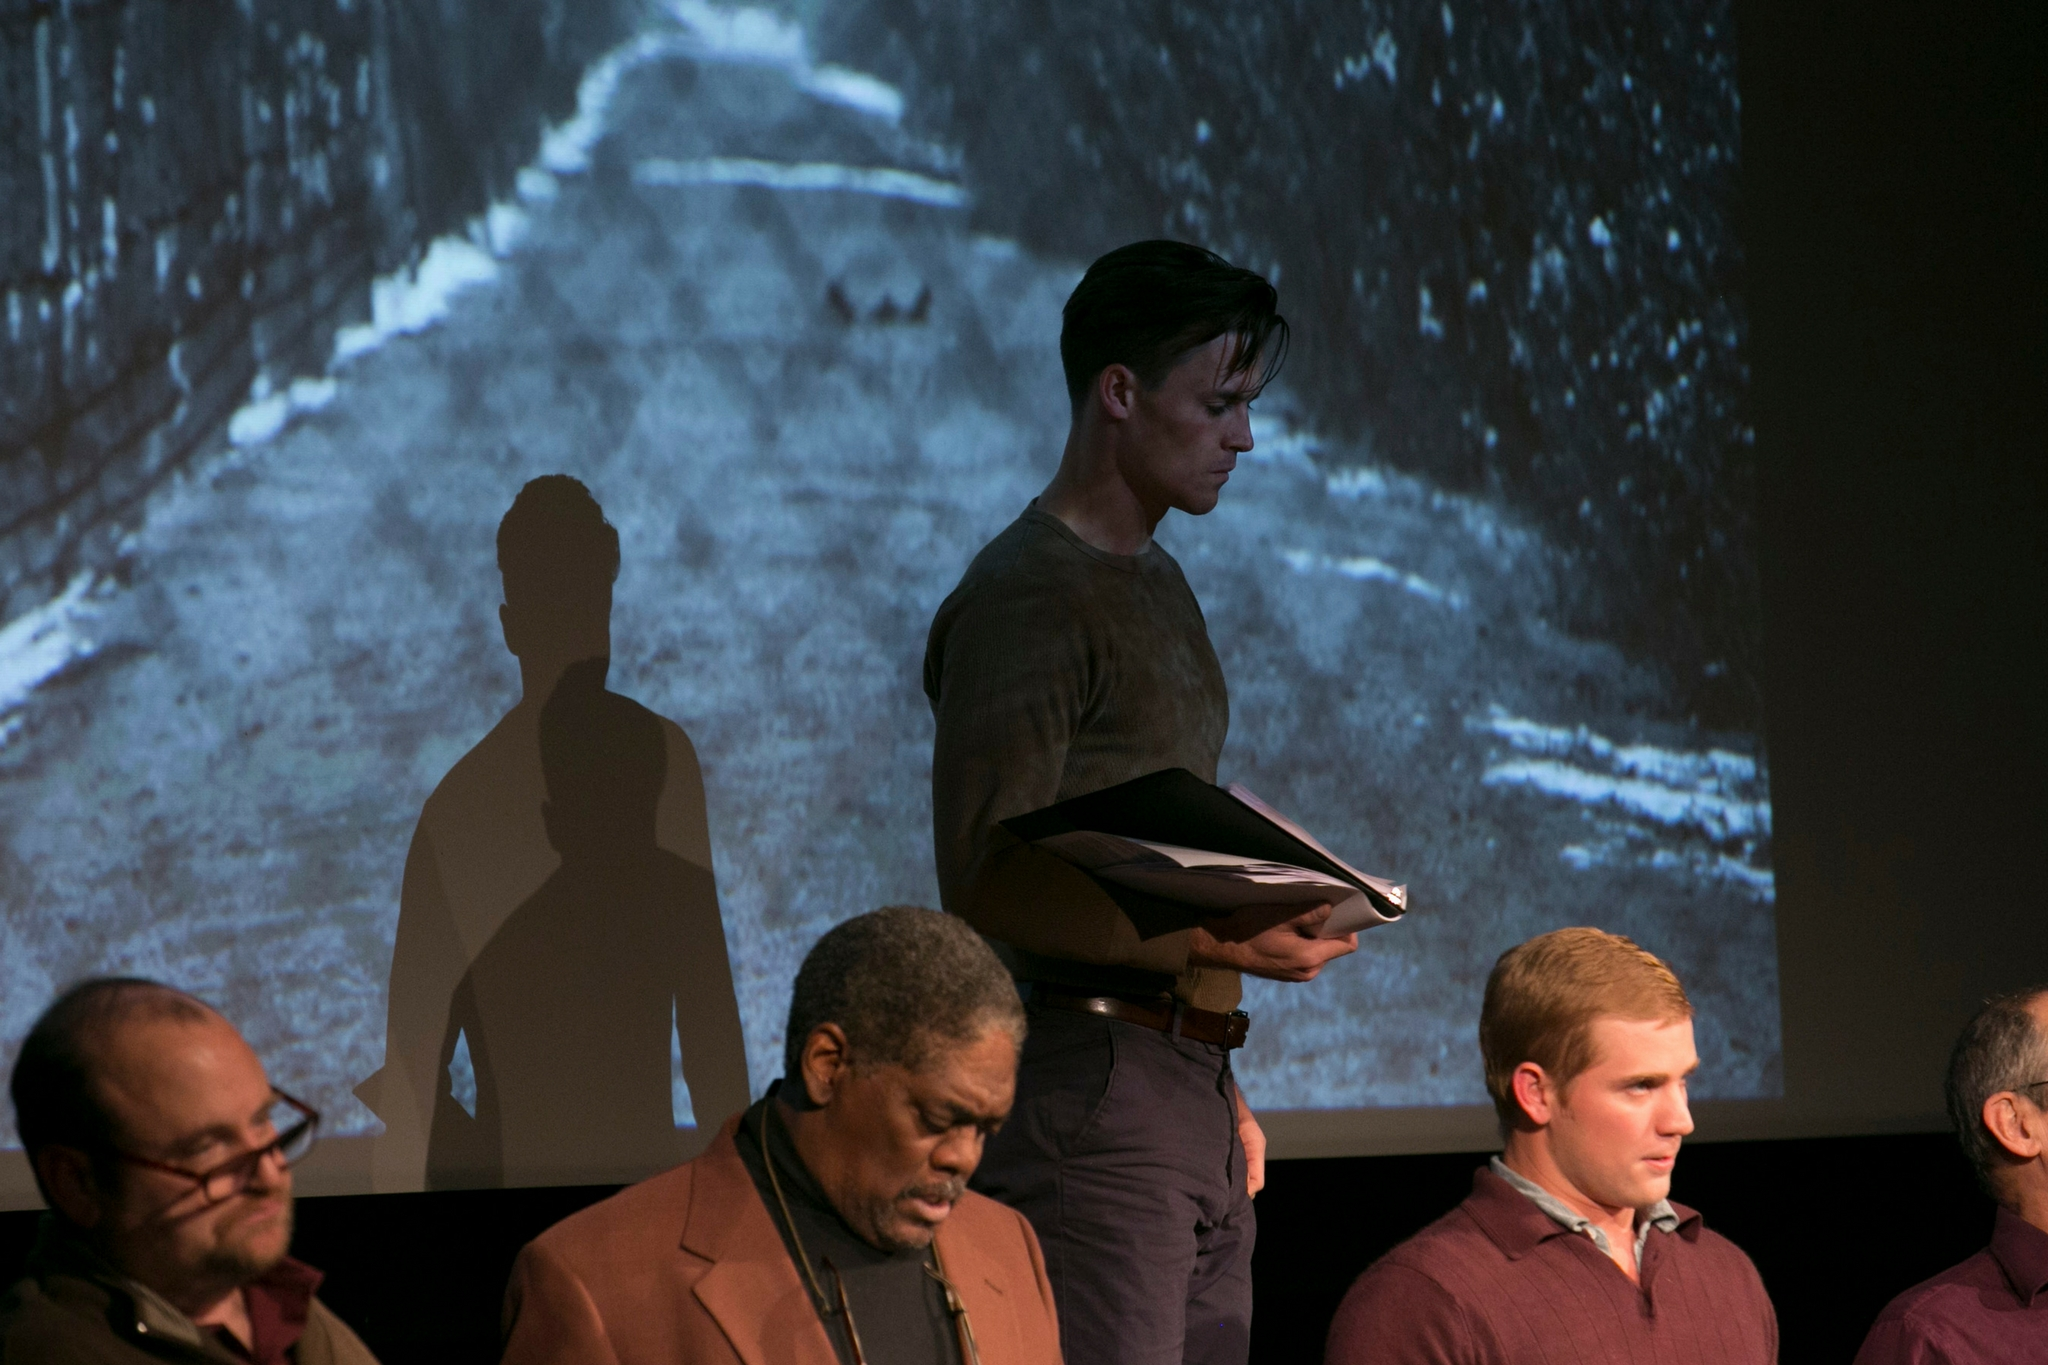 Brandon Whitehead (The Communist), Johnny Lee Davenport (The Pastor), Michael Underhill (S.S. Guard), and Nash Hightower (Second S.S. Guard ) in Prisoners Mix Cement, Theatre in the Rough, 2017-Photo by Evgenia Eliseeva